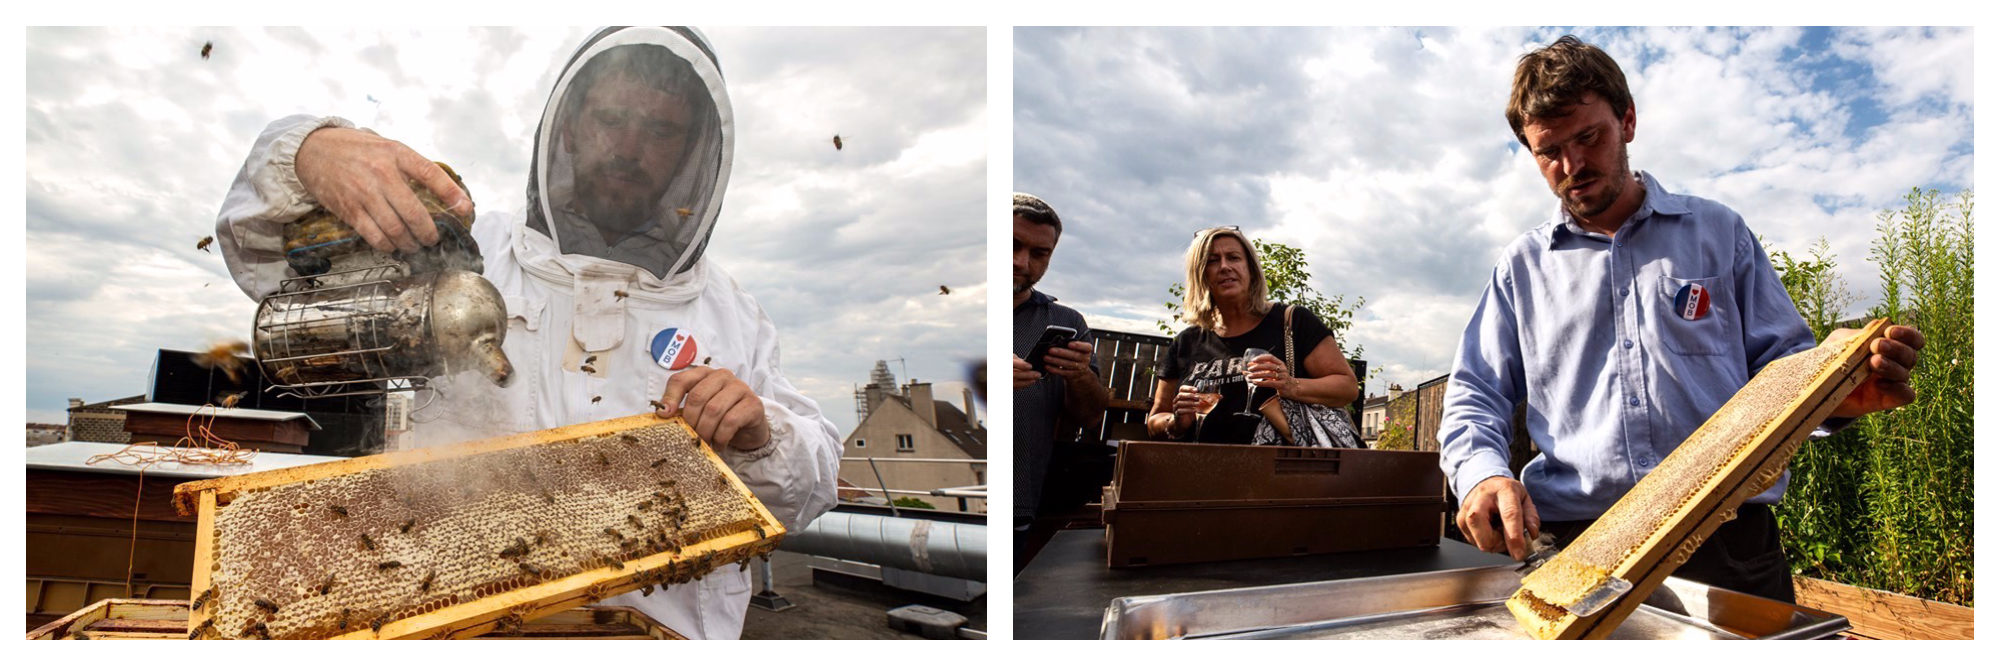 Beekeepers tending to their hives on the Paris rooftops.